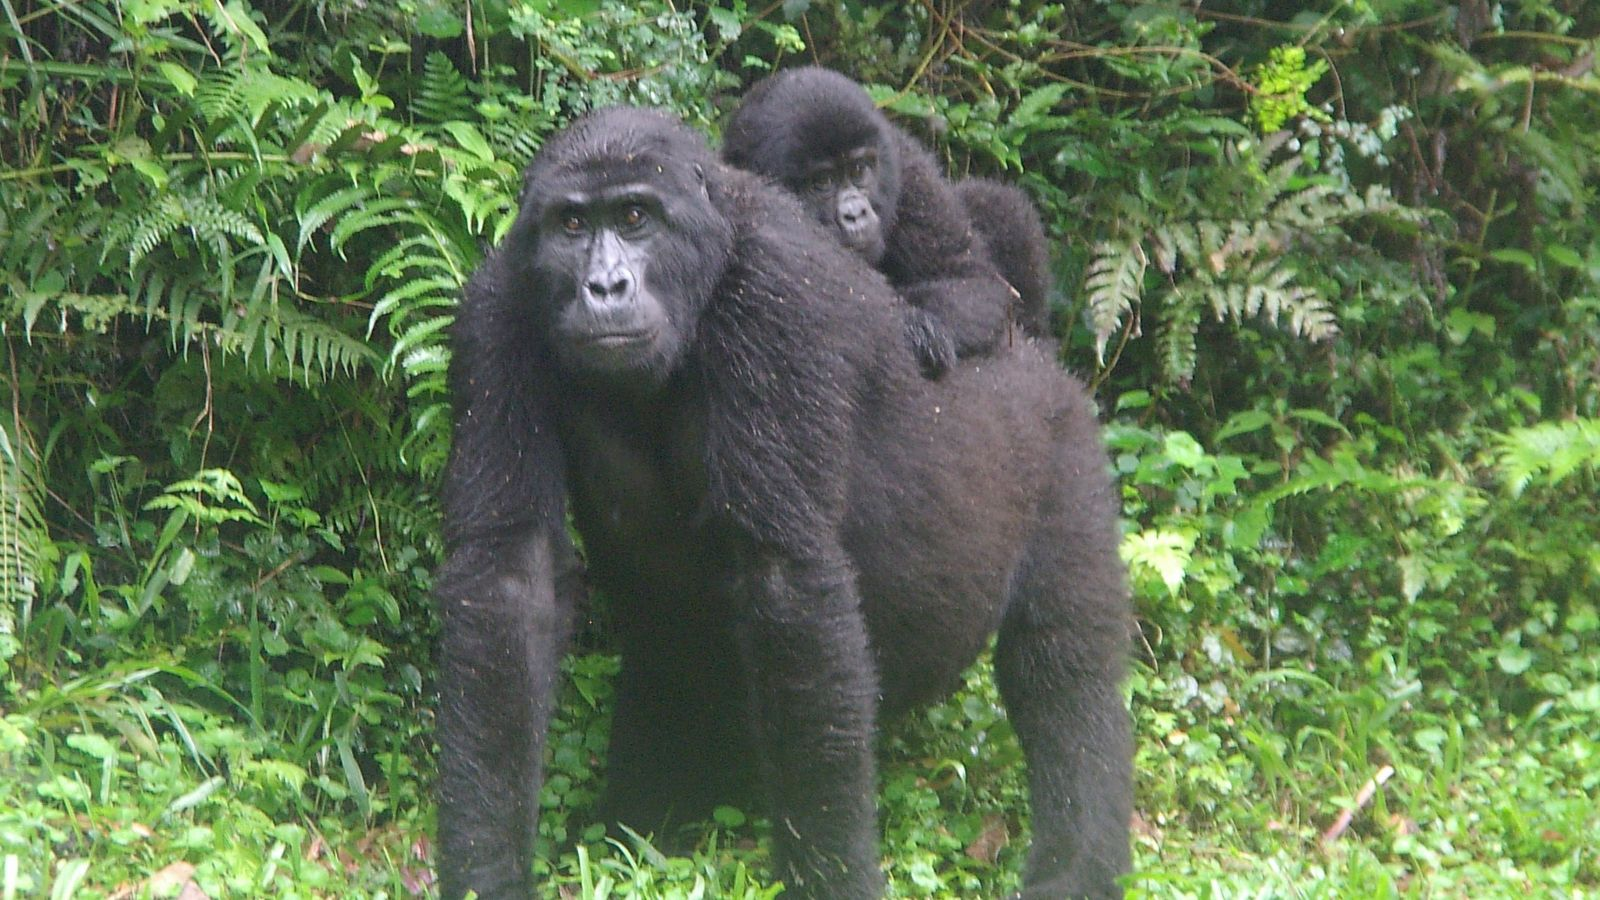 A gorilla called Karungyi, with its baby, in Uganda.